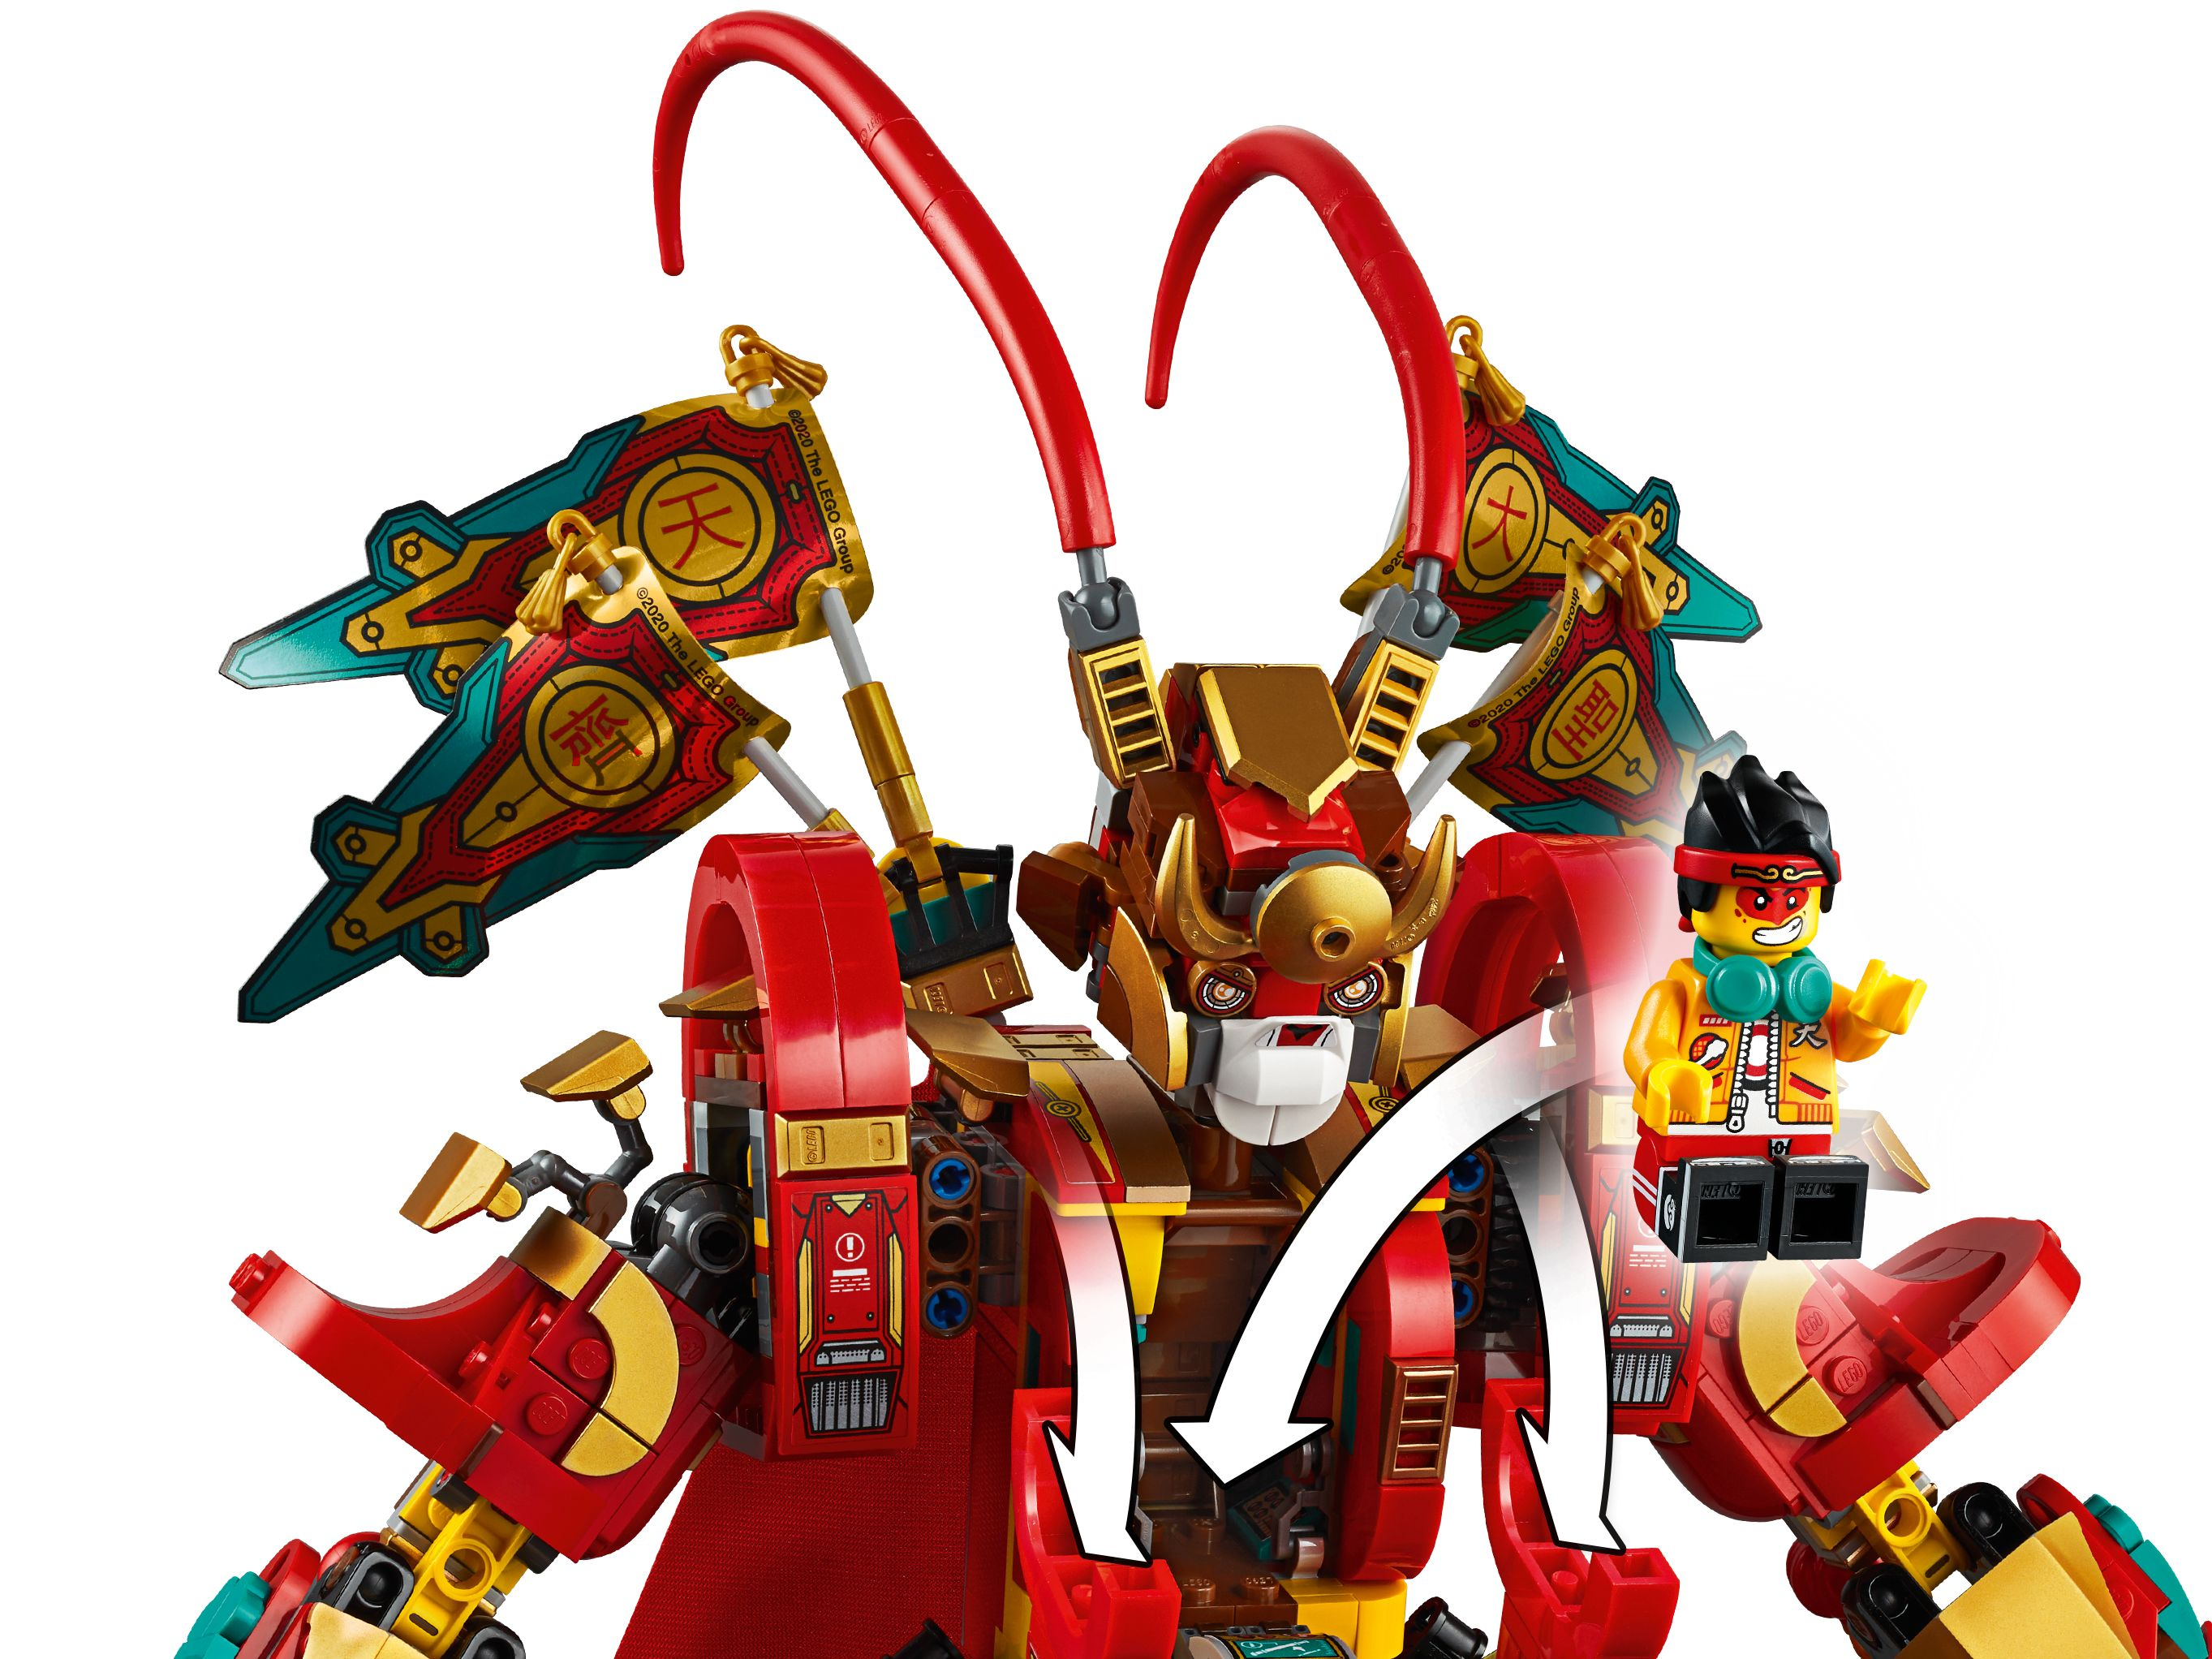 LEGO Monkie Kid 80012 Monkey King Mech LEGO_80012_alt6.jpg